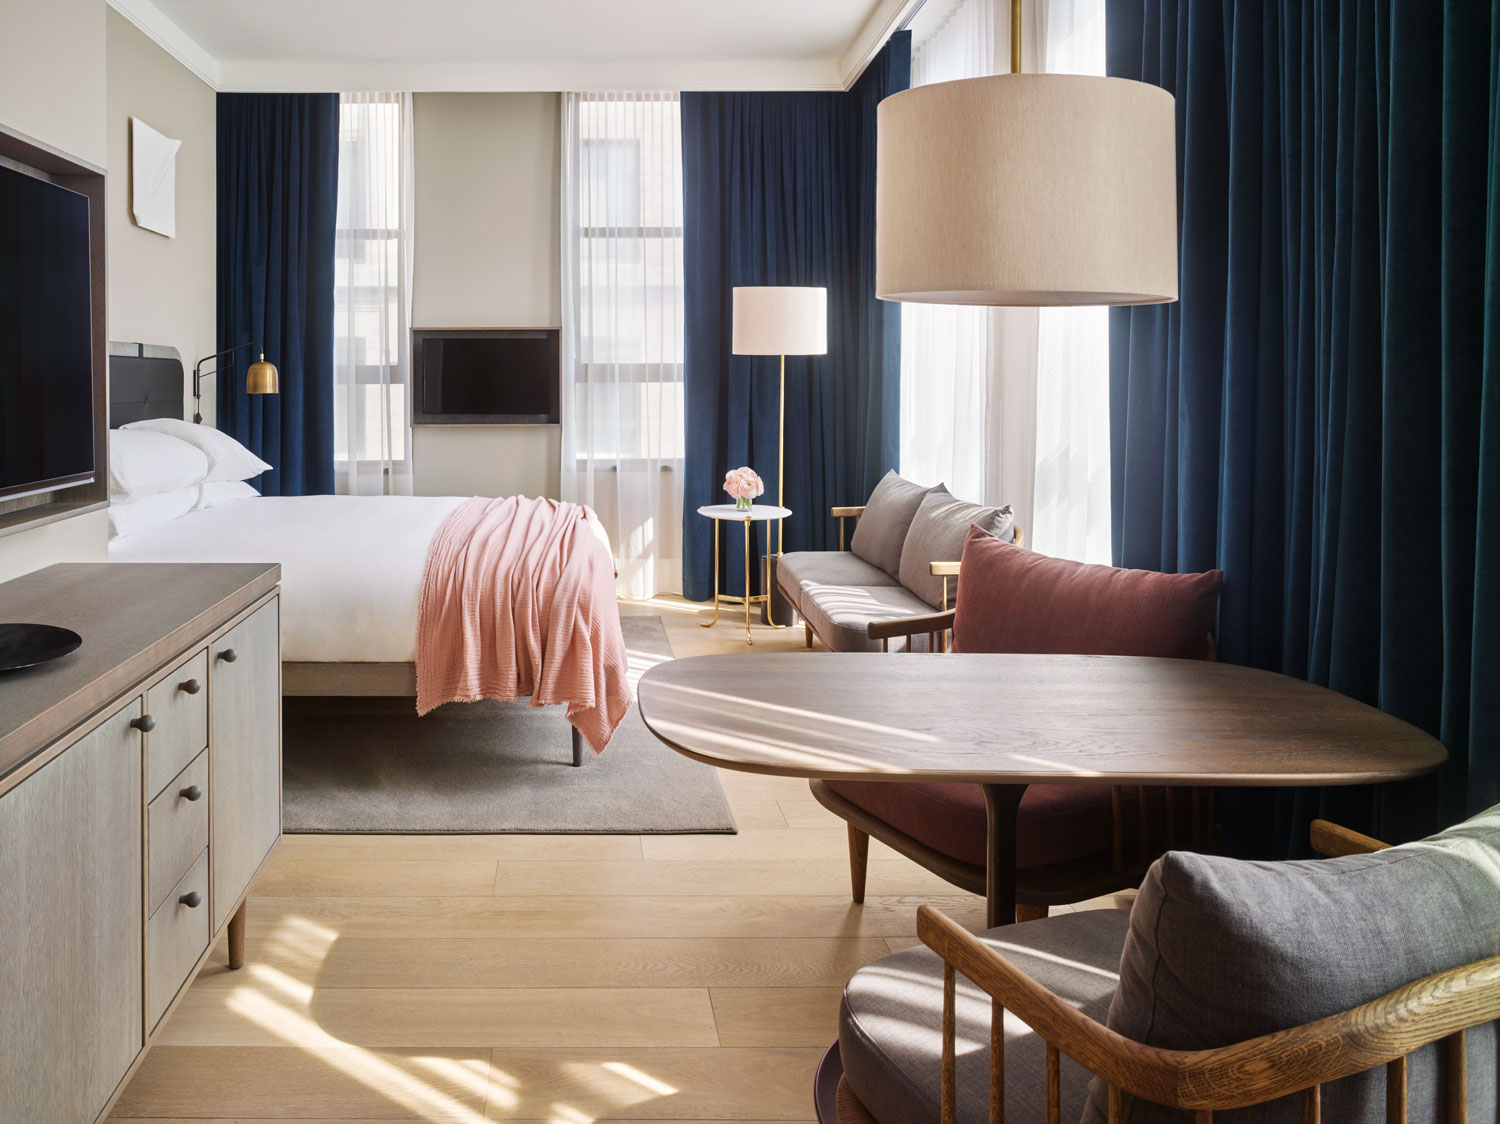 11 howard hotel opens in new york yellowtrace for Hotel design jersey